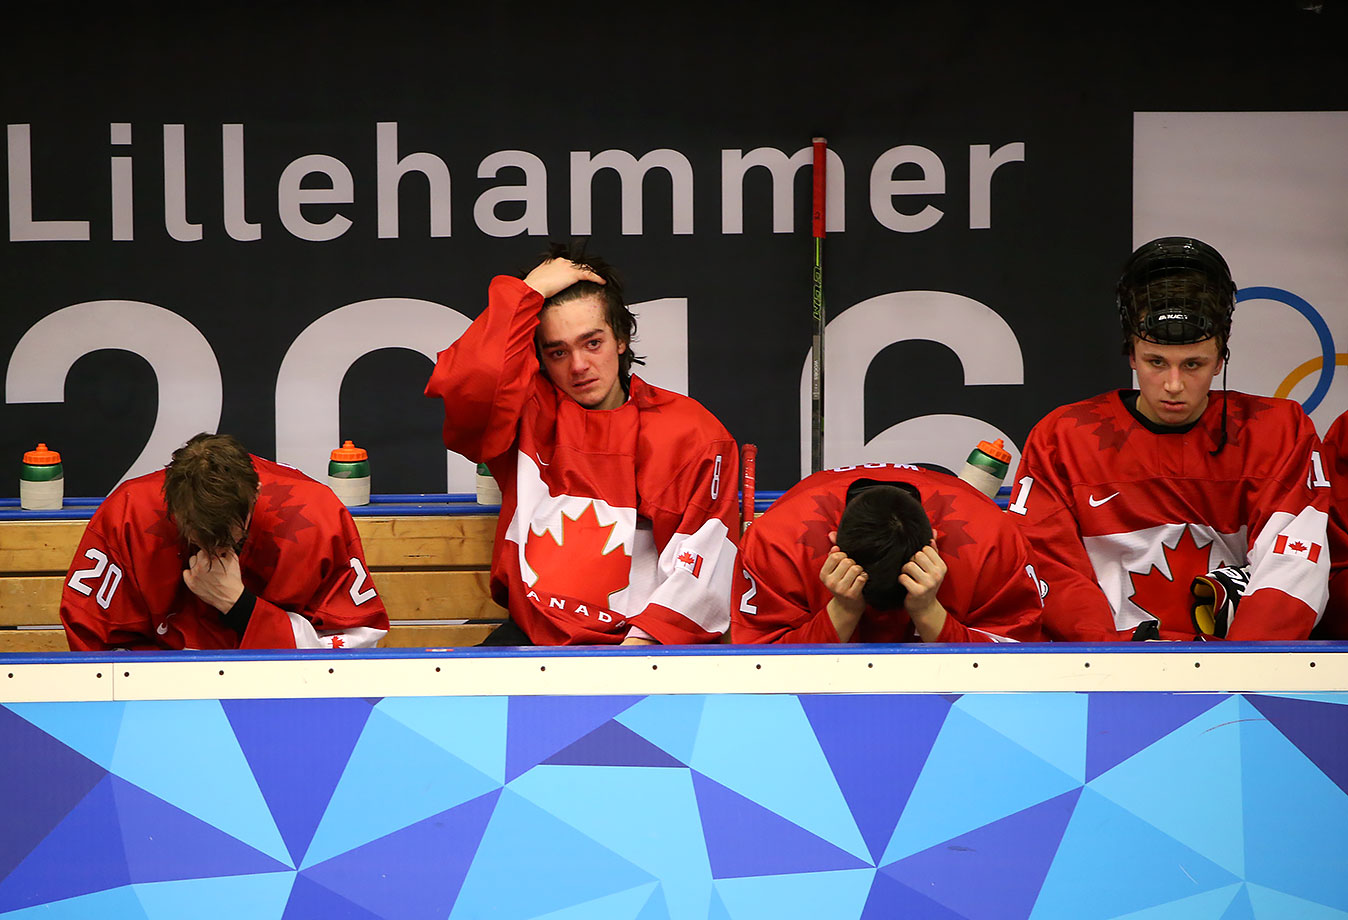 Team Canada reacts on their bench after losing 5-2 to Team USA in the Ice Hockey men's final at the Kristins Hall on Feb. 21, 2016 during the Winter Youth Olympic Games in Lillehammer, Norway.